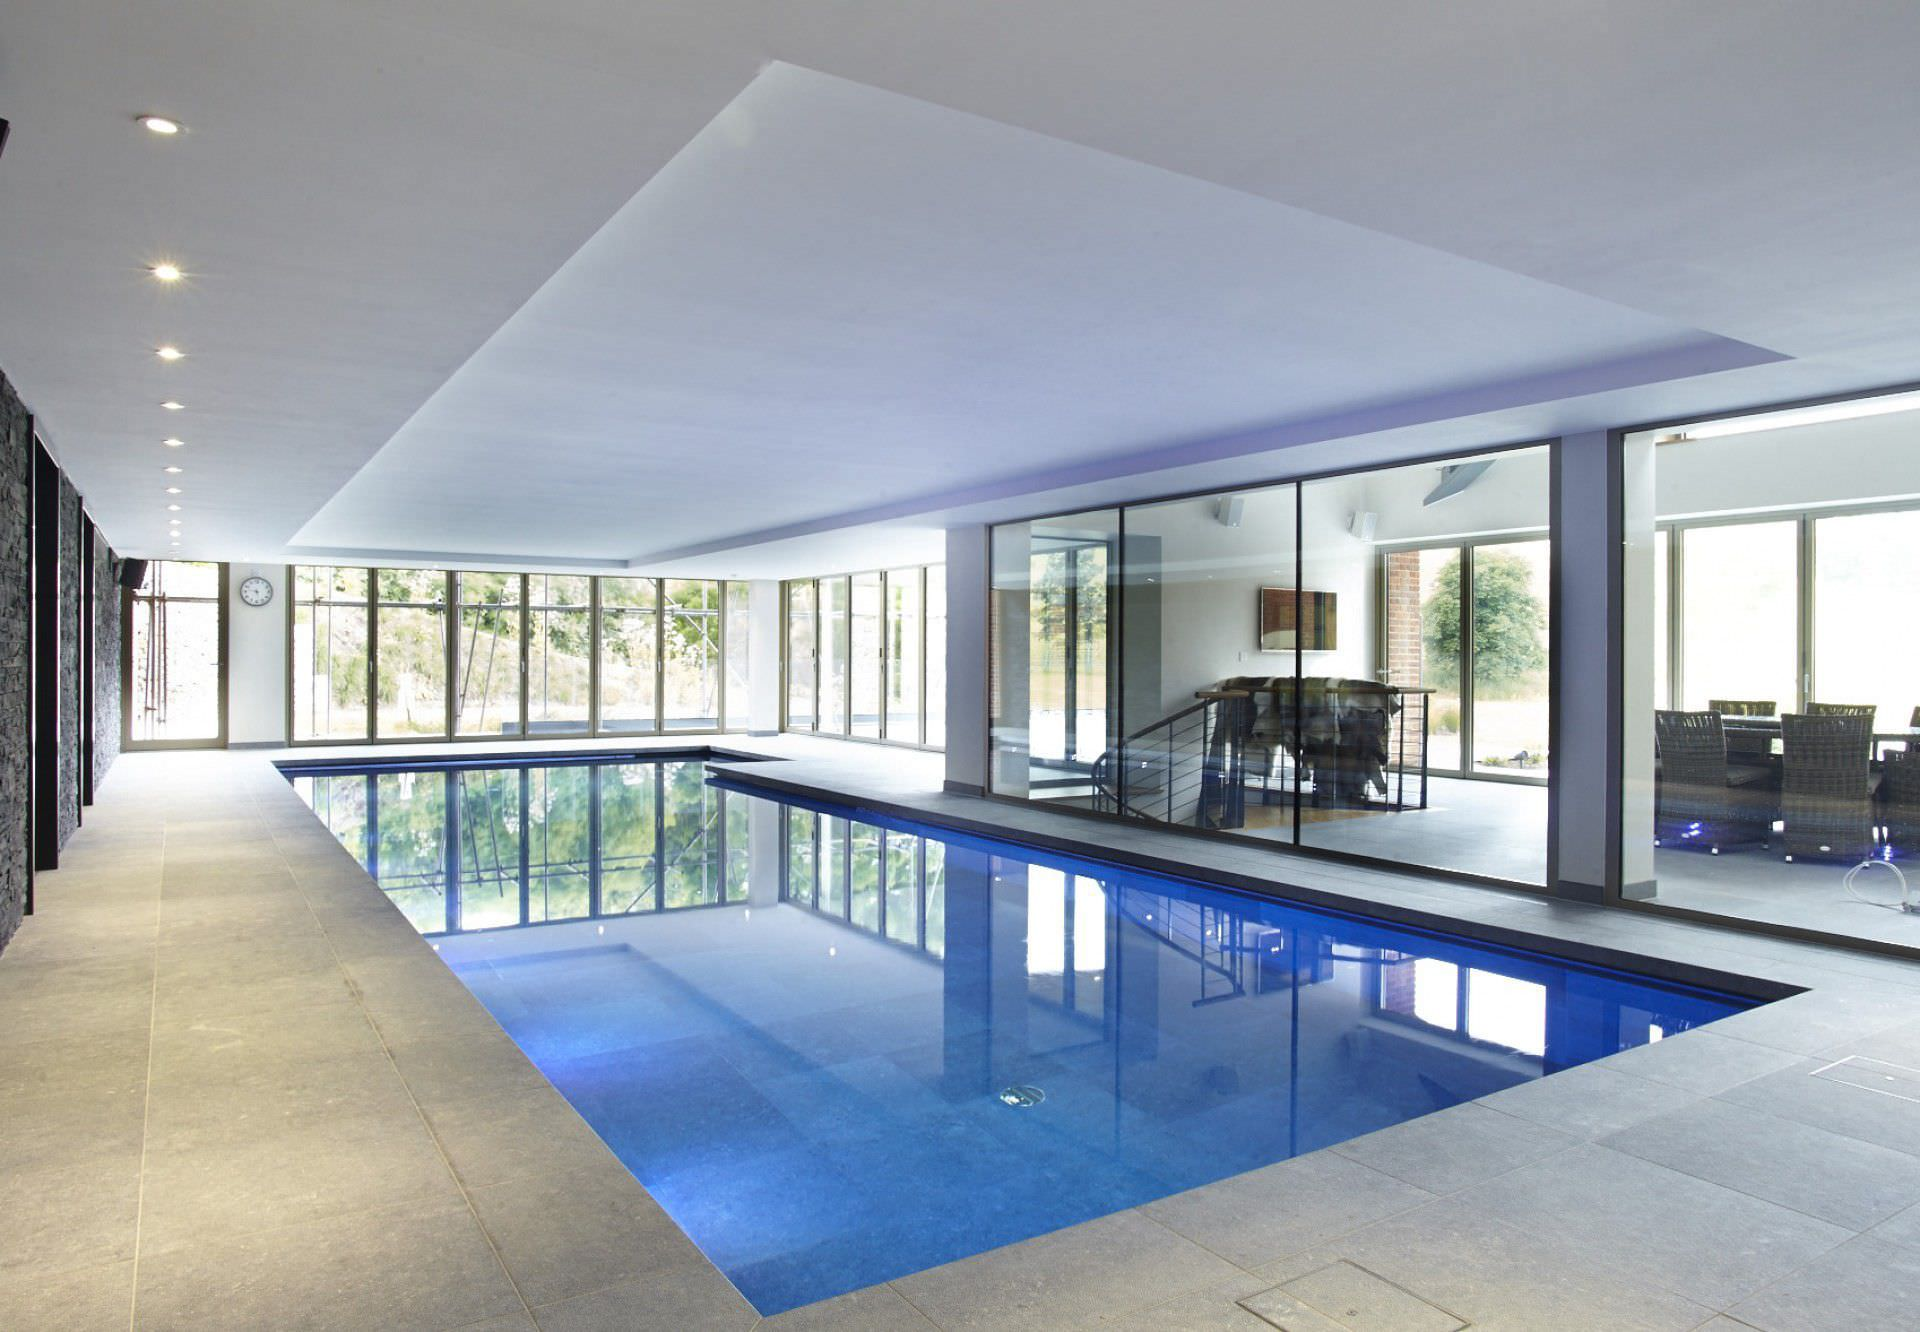 Private Indoor Swimming Pools in-ground swimming pool / ceramic / indoor - buckinghamshire